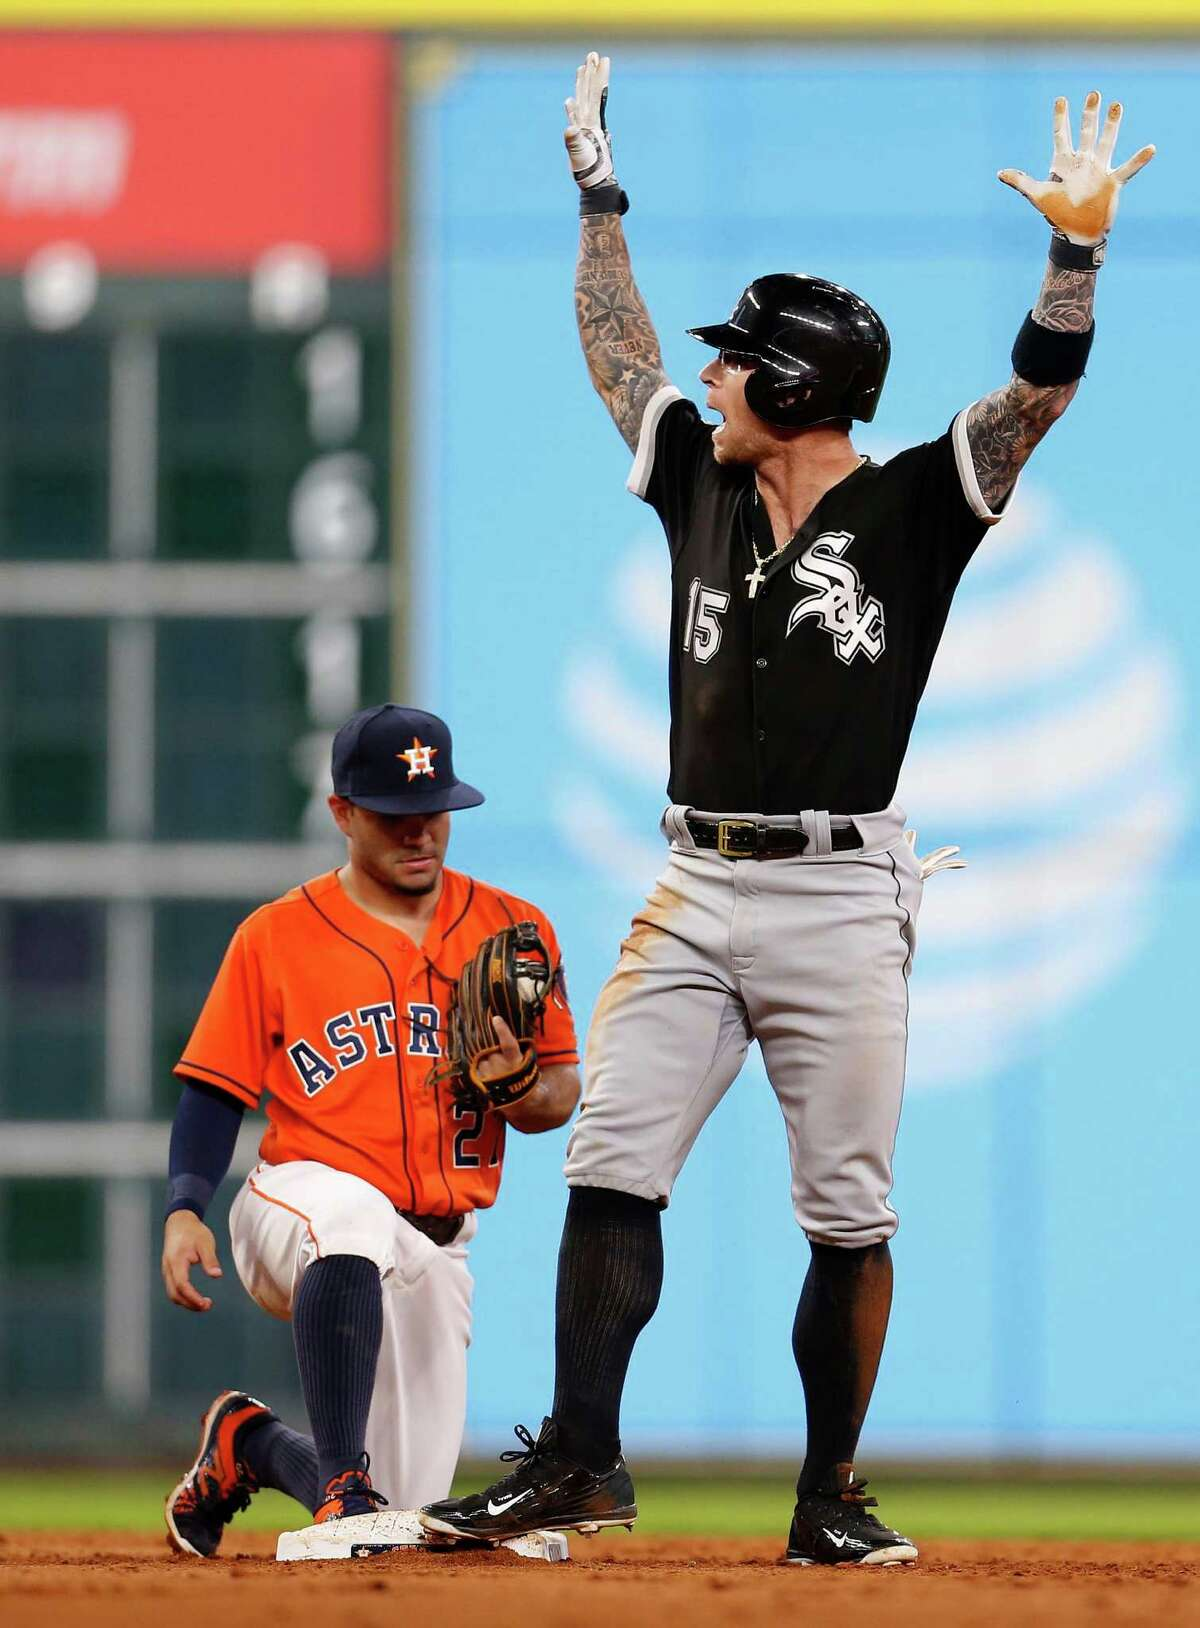 Chicago White Sox second baseman Brett Lawrie (15) reacts after his double during the sixth inning of an MLB baseball game at Minute Maid Park, Friday, July 1, 2016, in Houston.